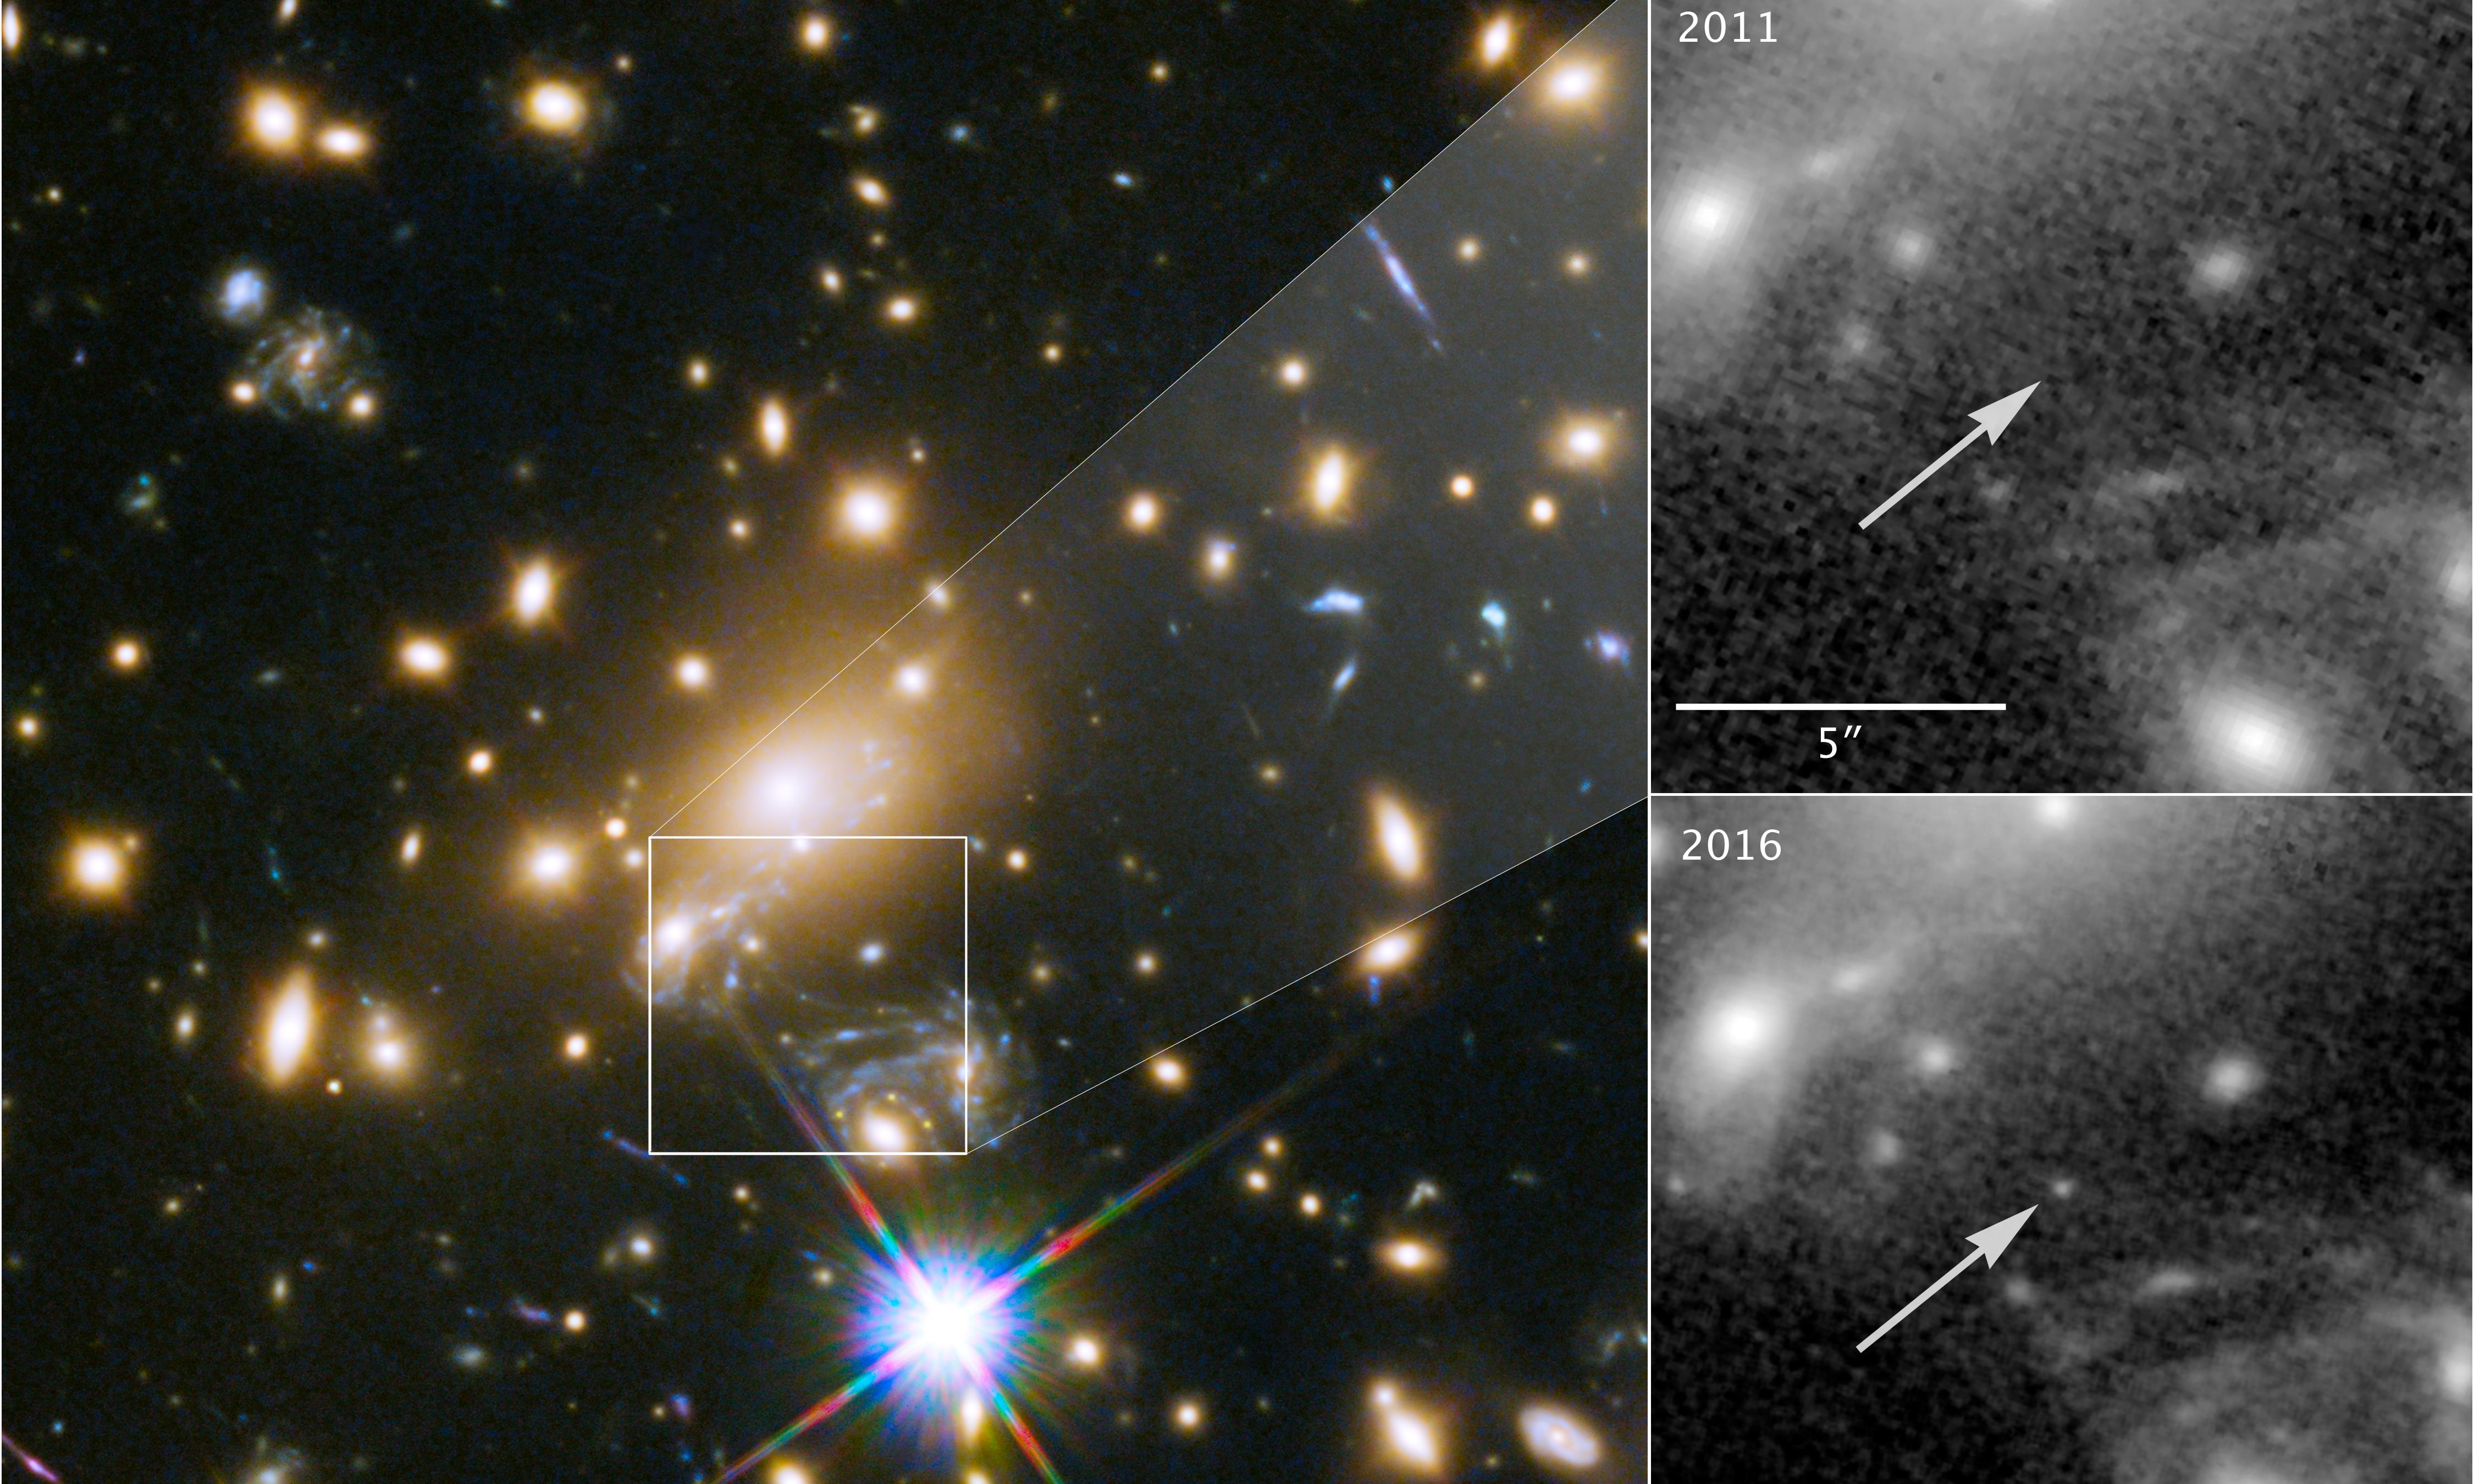 Hubble space telescope captures image of most distant star ever seen